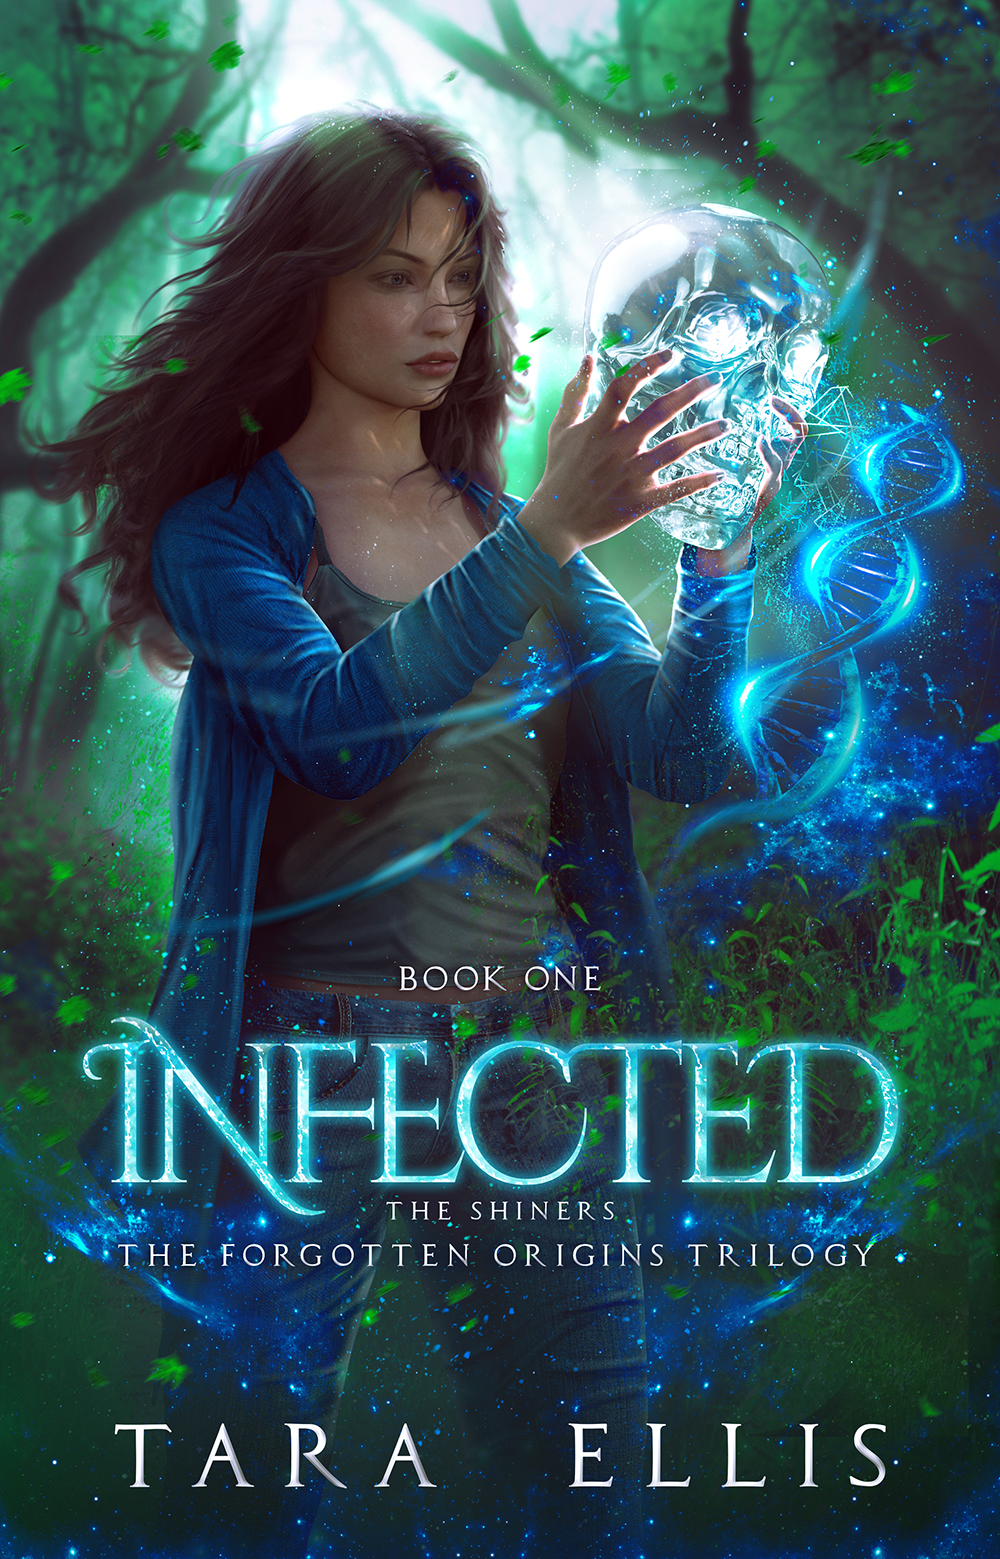 Young Adult Book Cover ~ Tara ellis meyers young adult sci fi cover reveal